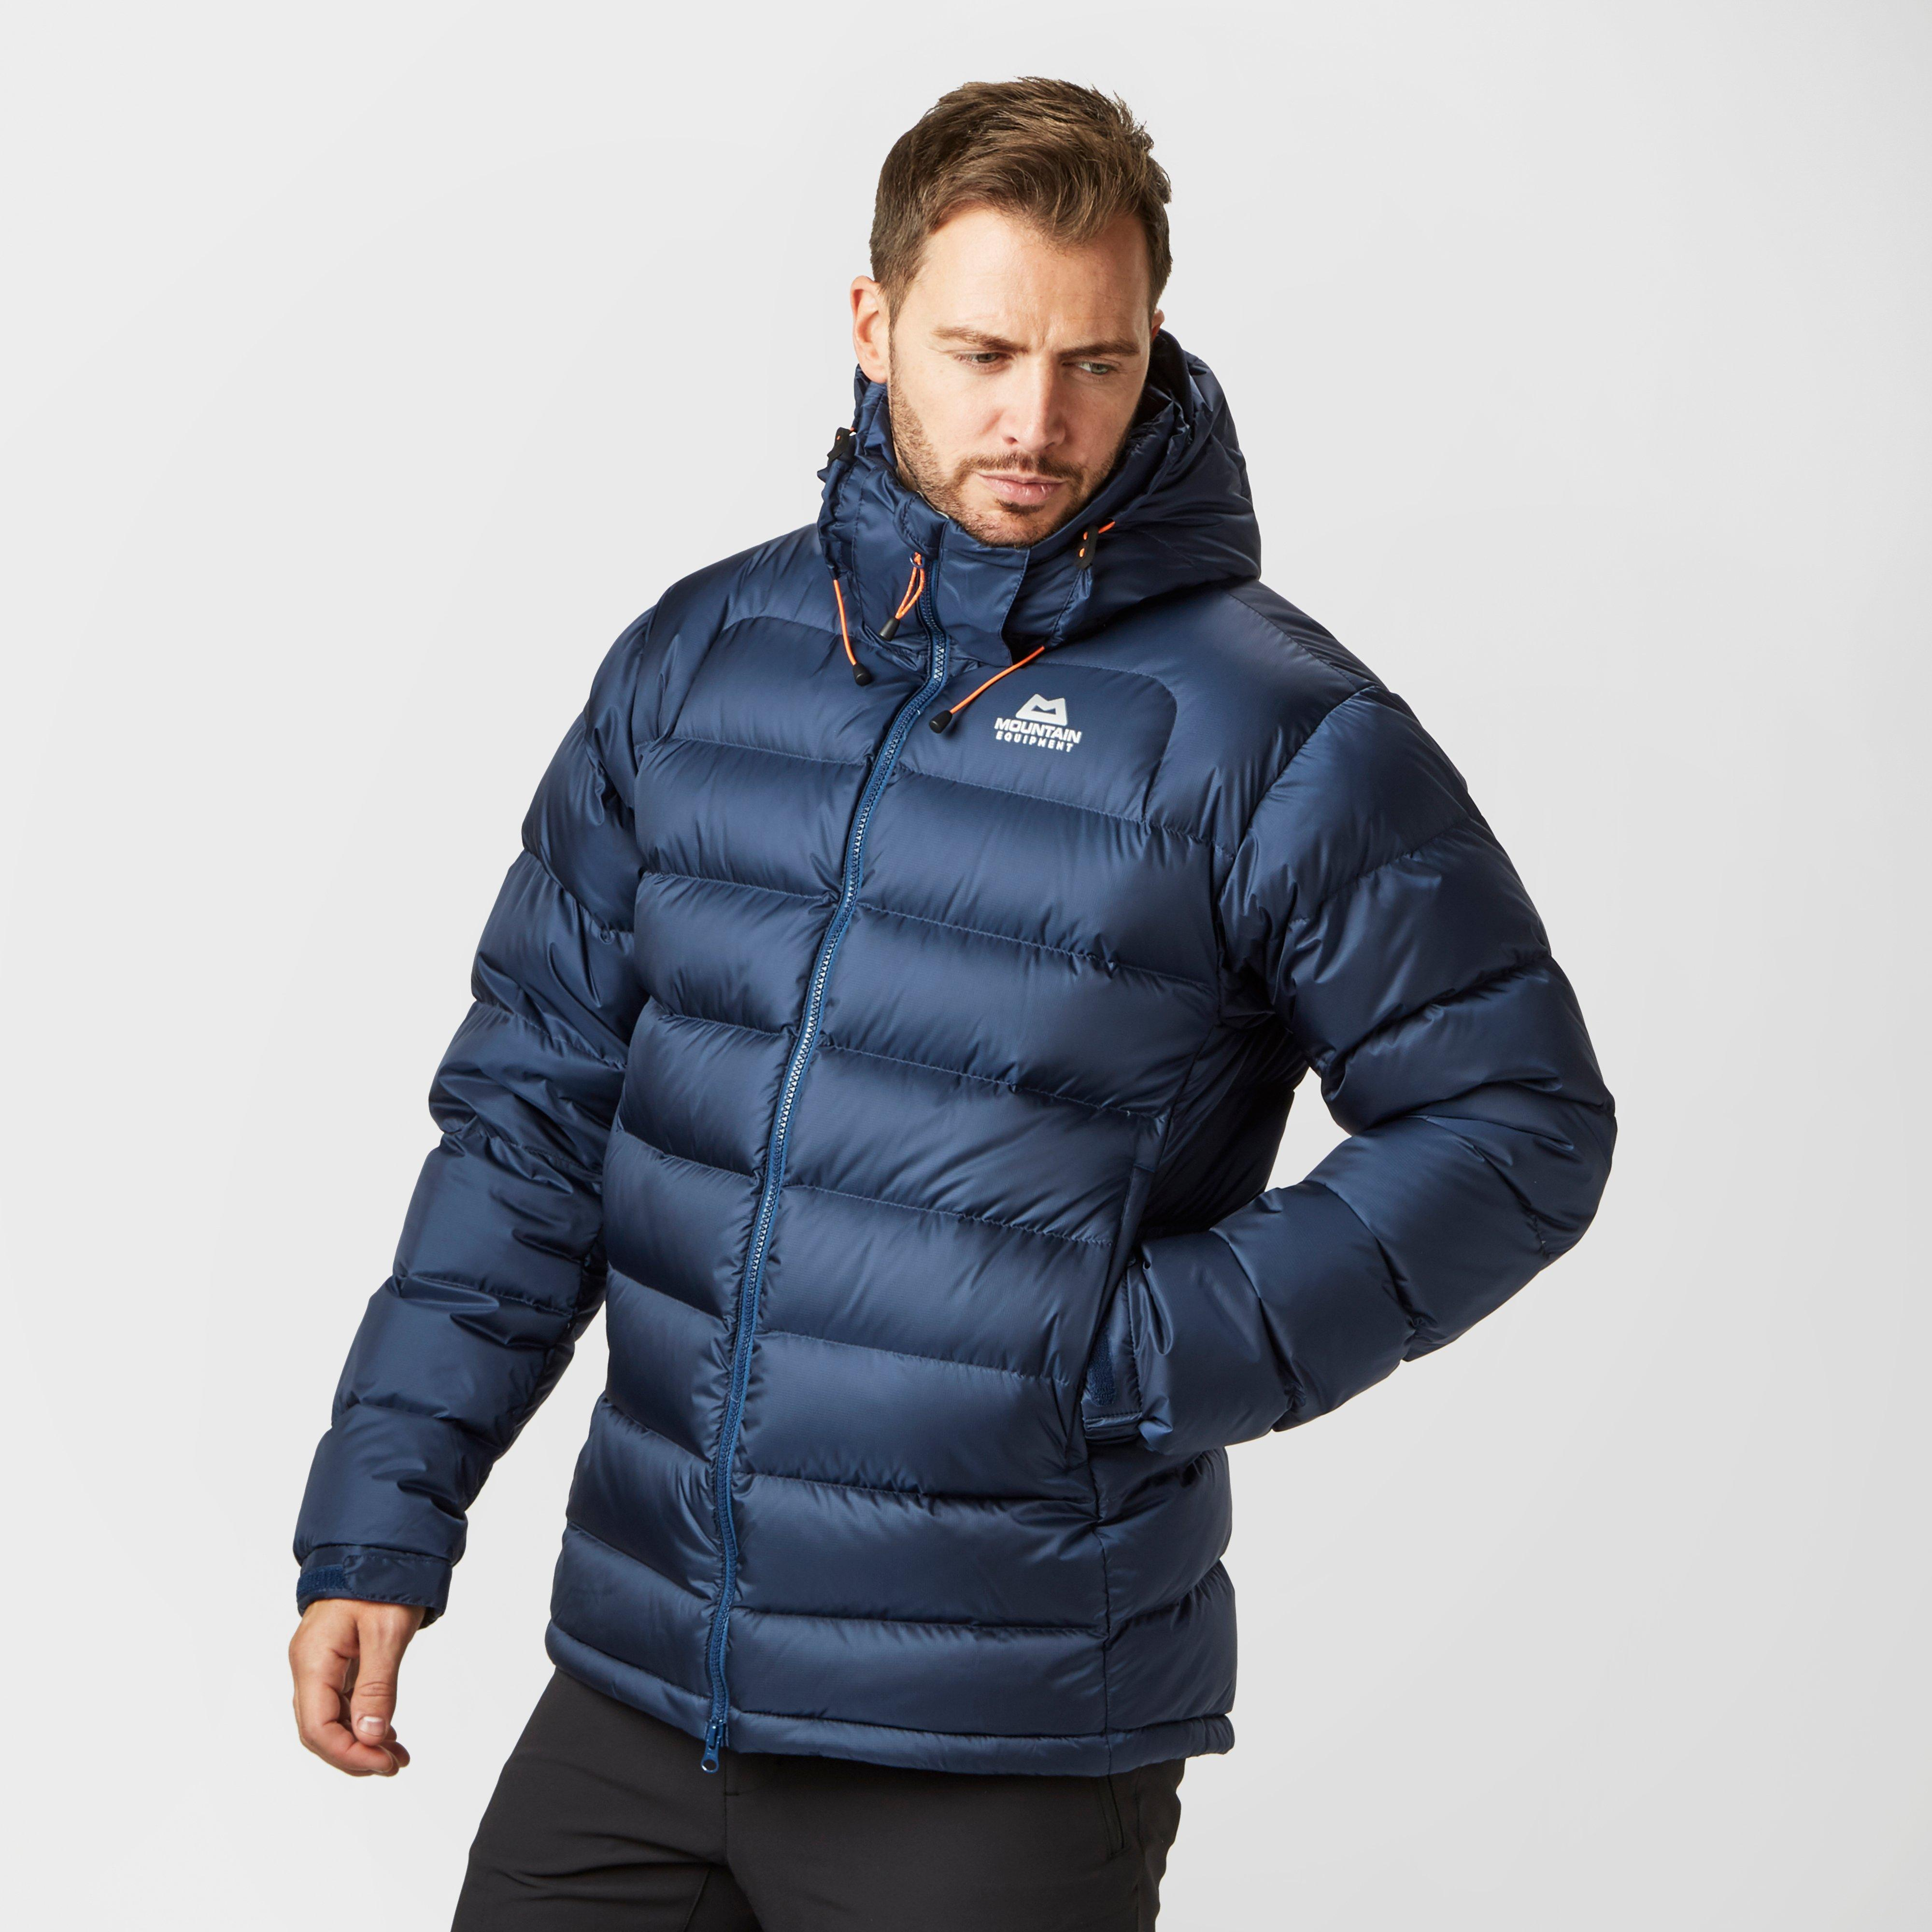 Men's Down & Insulated Jackets Look great, while feeling warm and snug in a luxurious down jacket. Naturally insulating, the three dimensional structure of down creates friction which builds heat to regulate your body temperature.